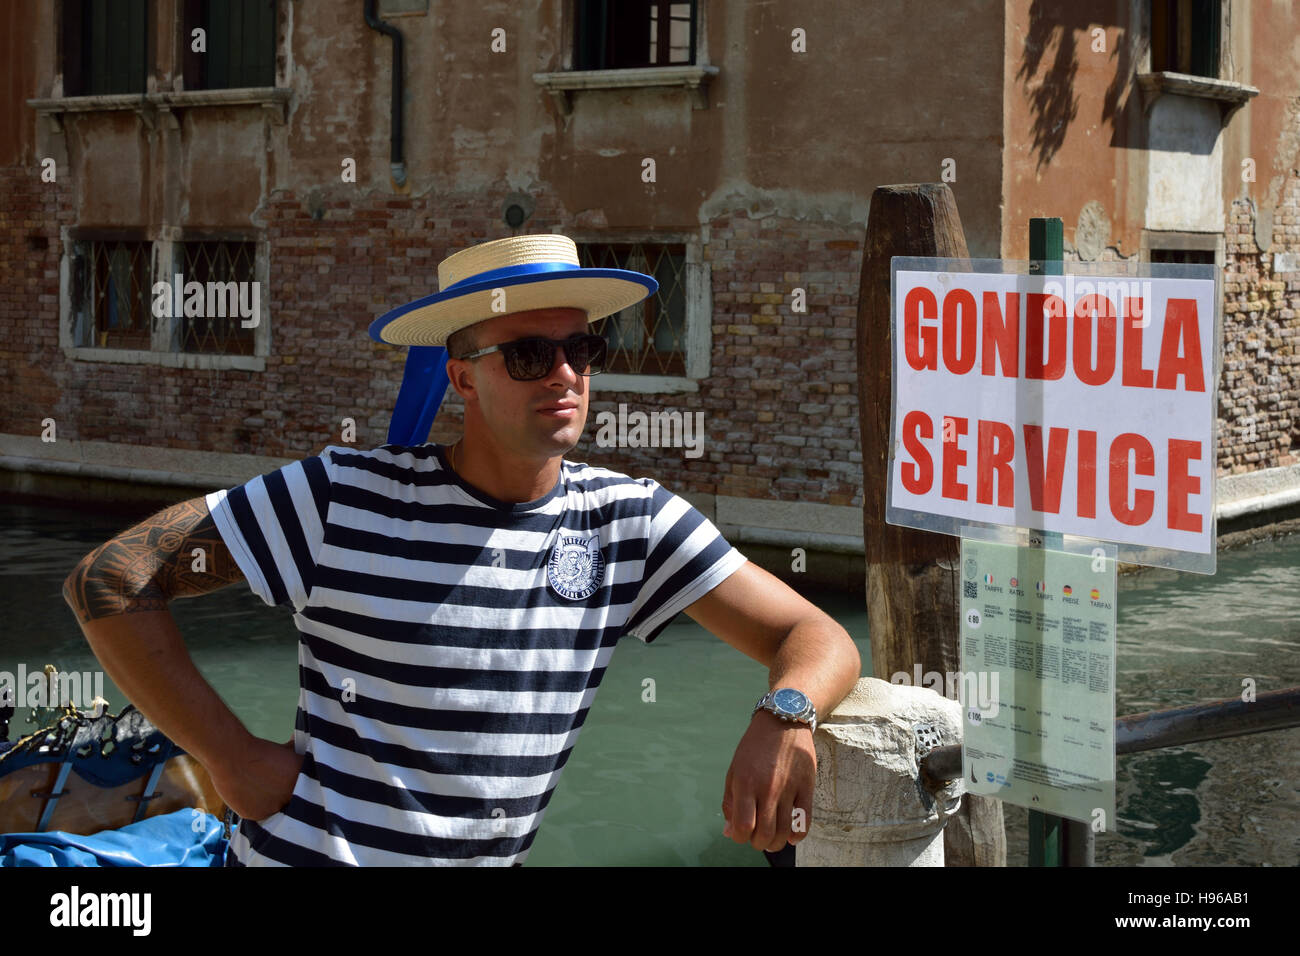 Gondolier with the typical headgear on a canal of Venice in Italy. - Stock Image